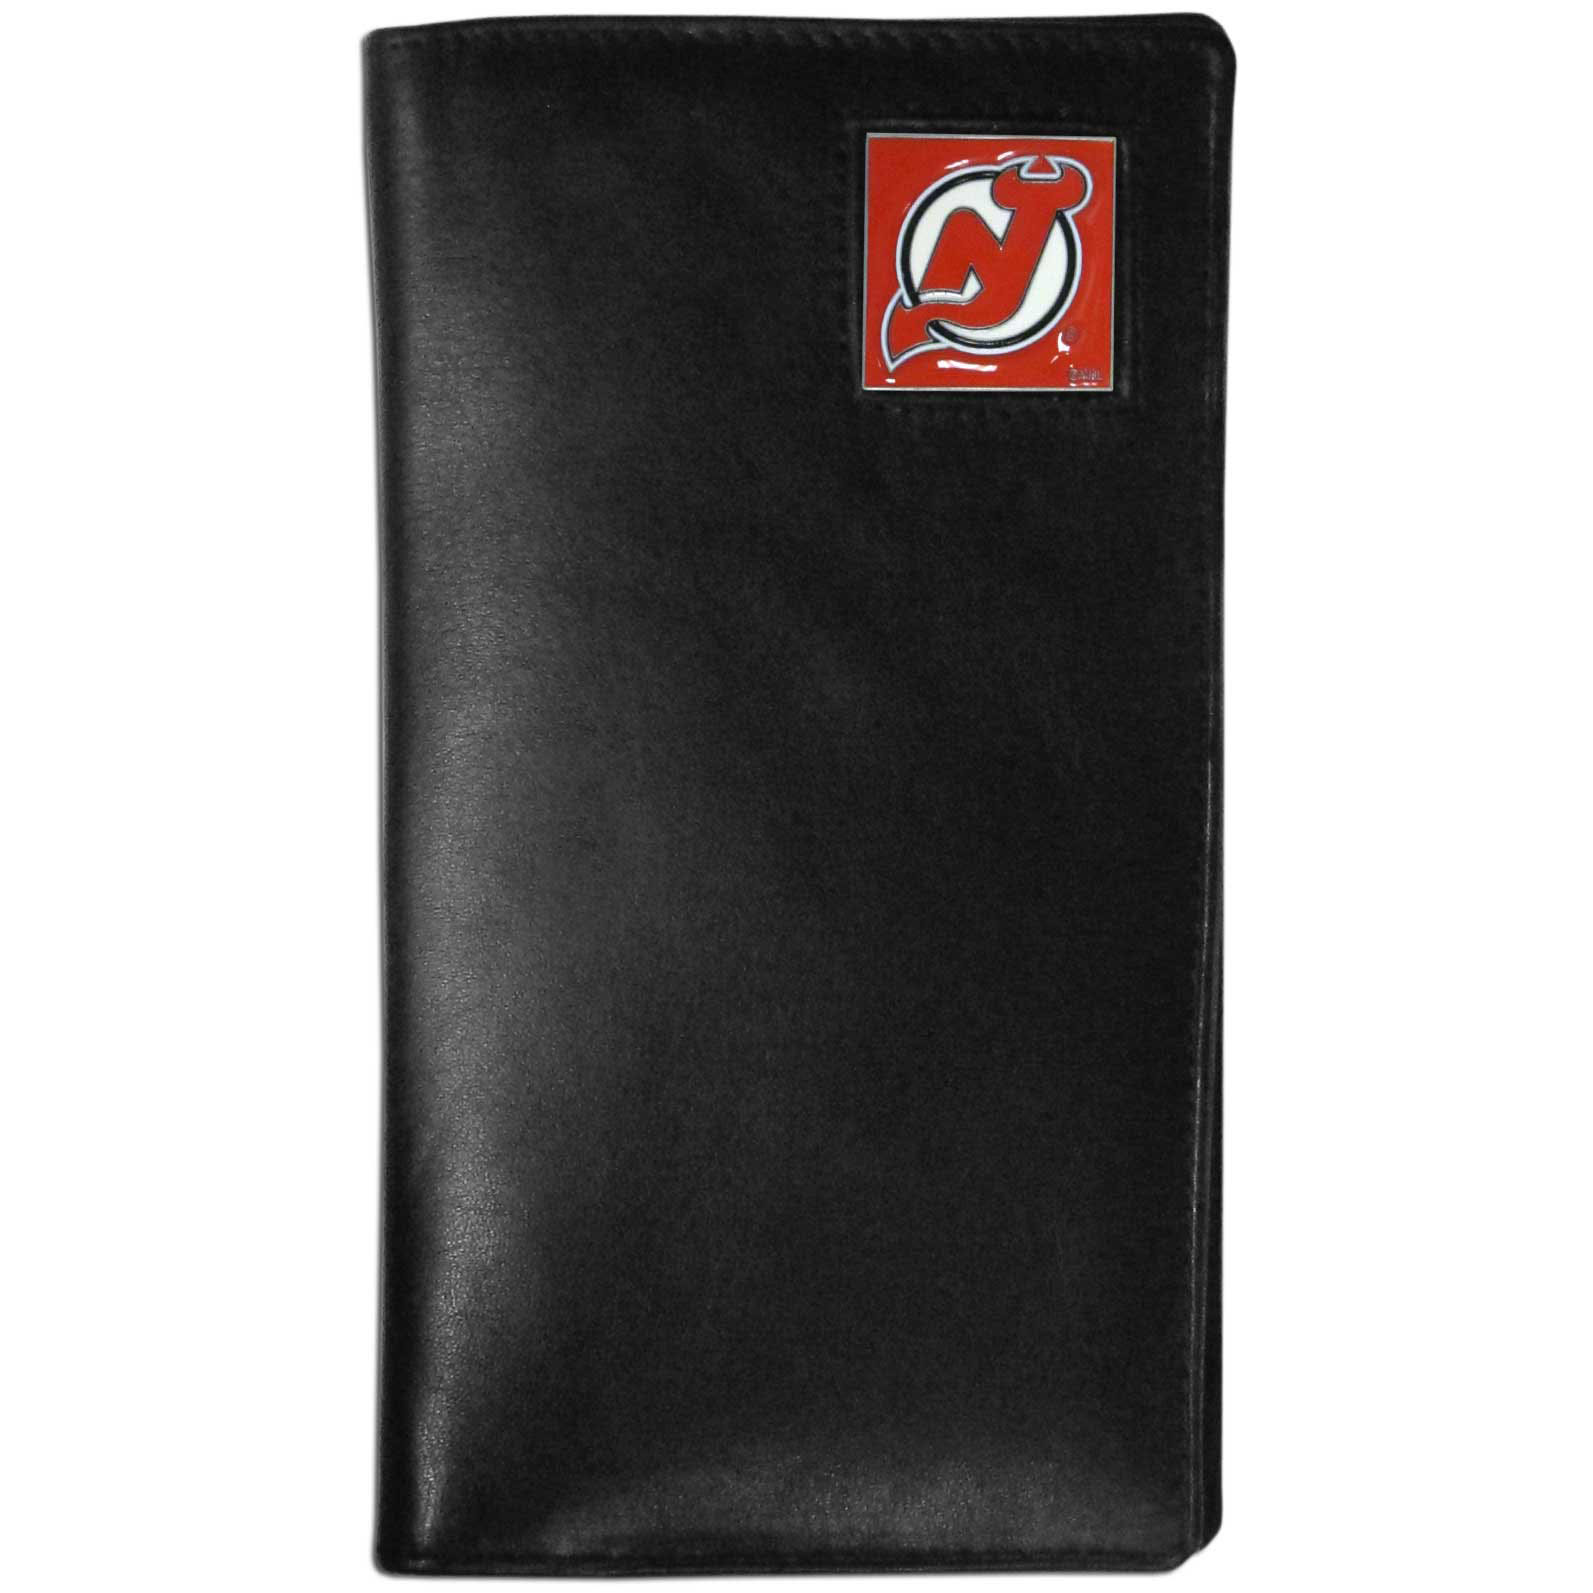 New Jersey Devils Tall Leather Wallet - This officially licensed New Jersey Devils tall leather wallet cover is made of high quality leather with a fully cast metal New Jersey Devils emblem with enameled New Jersey Devils color detail. The cover fits both side and top loaded checks and includes a large zippered pocket, windowed ID slot, numerous credit card slots and billfold pocket. Thank you for visiting CrazedOutSports